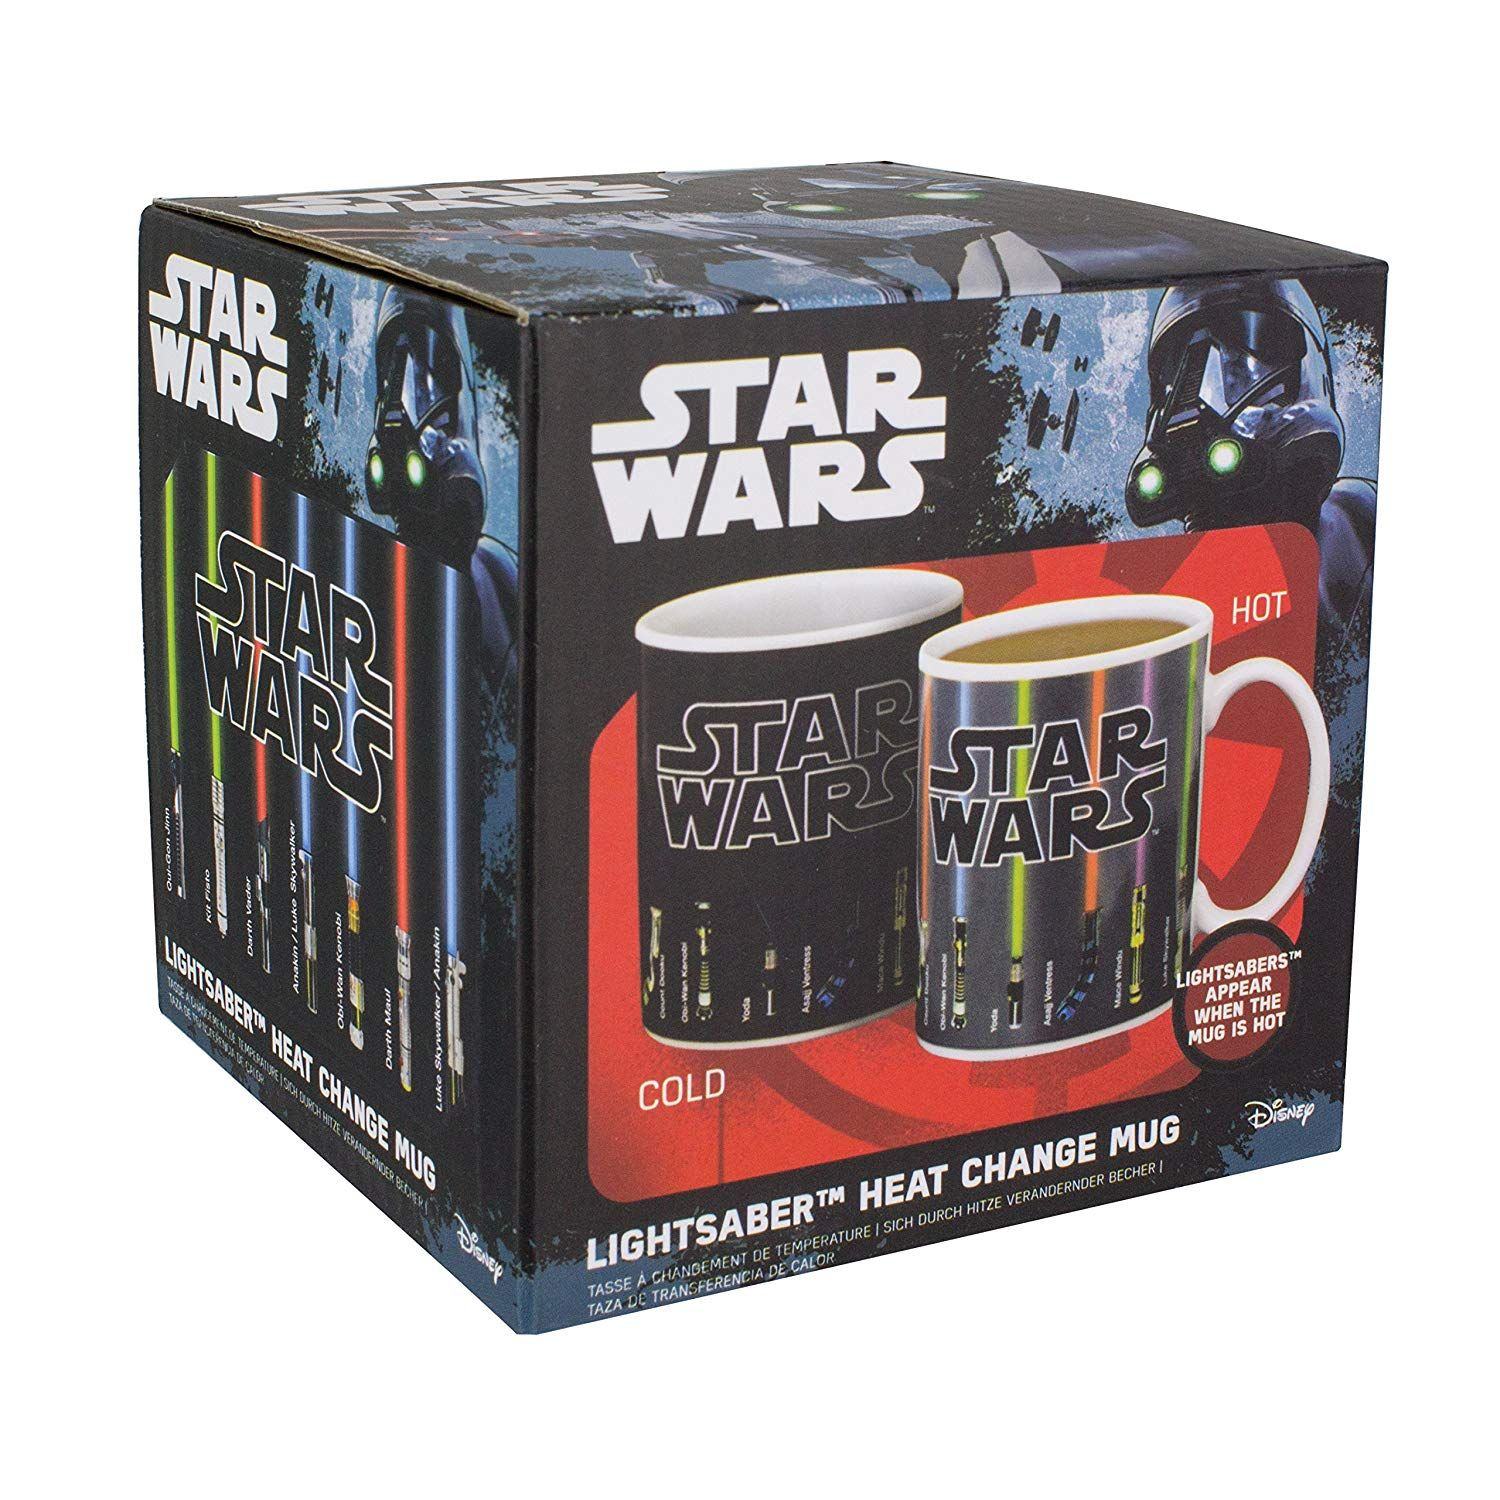 Add a hot drink to see the lightsabers appear features